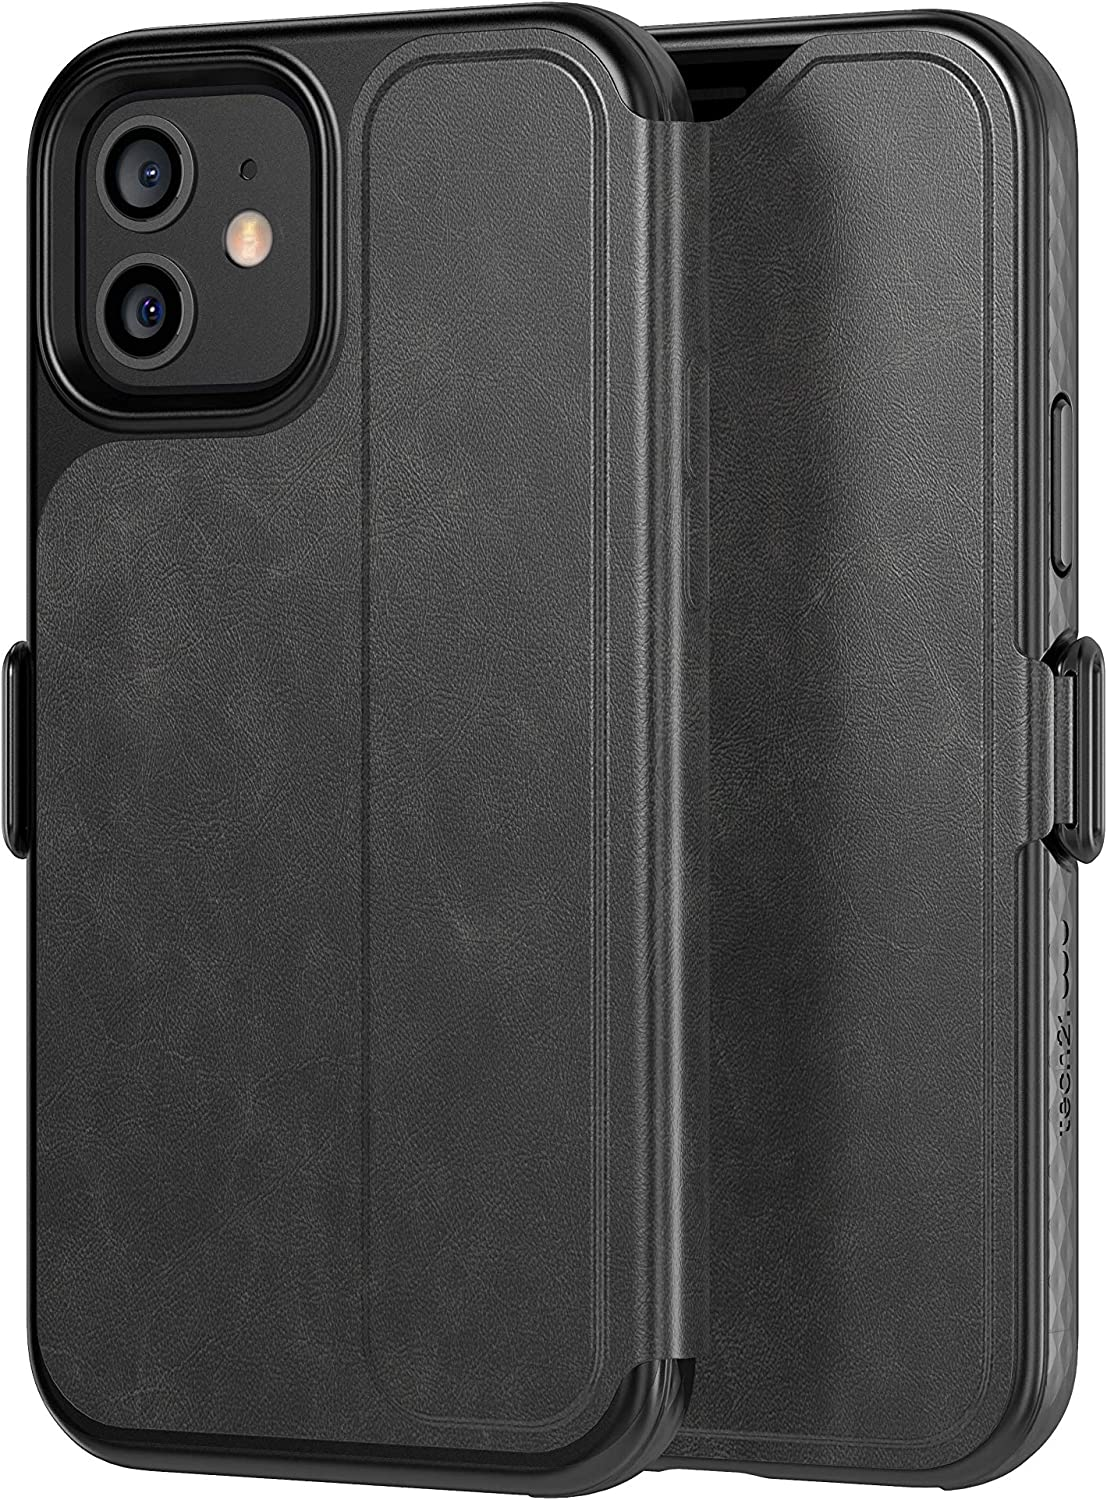 tech21 EvoWallet for Apple iPhone 12 and 12 Pro 6.1 inch 5G - Germ Fighting Antimicrobial Phone Case with 12 ft. Drop Protection (T21-8381)